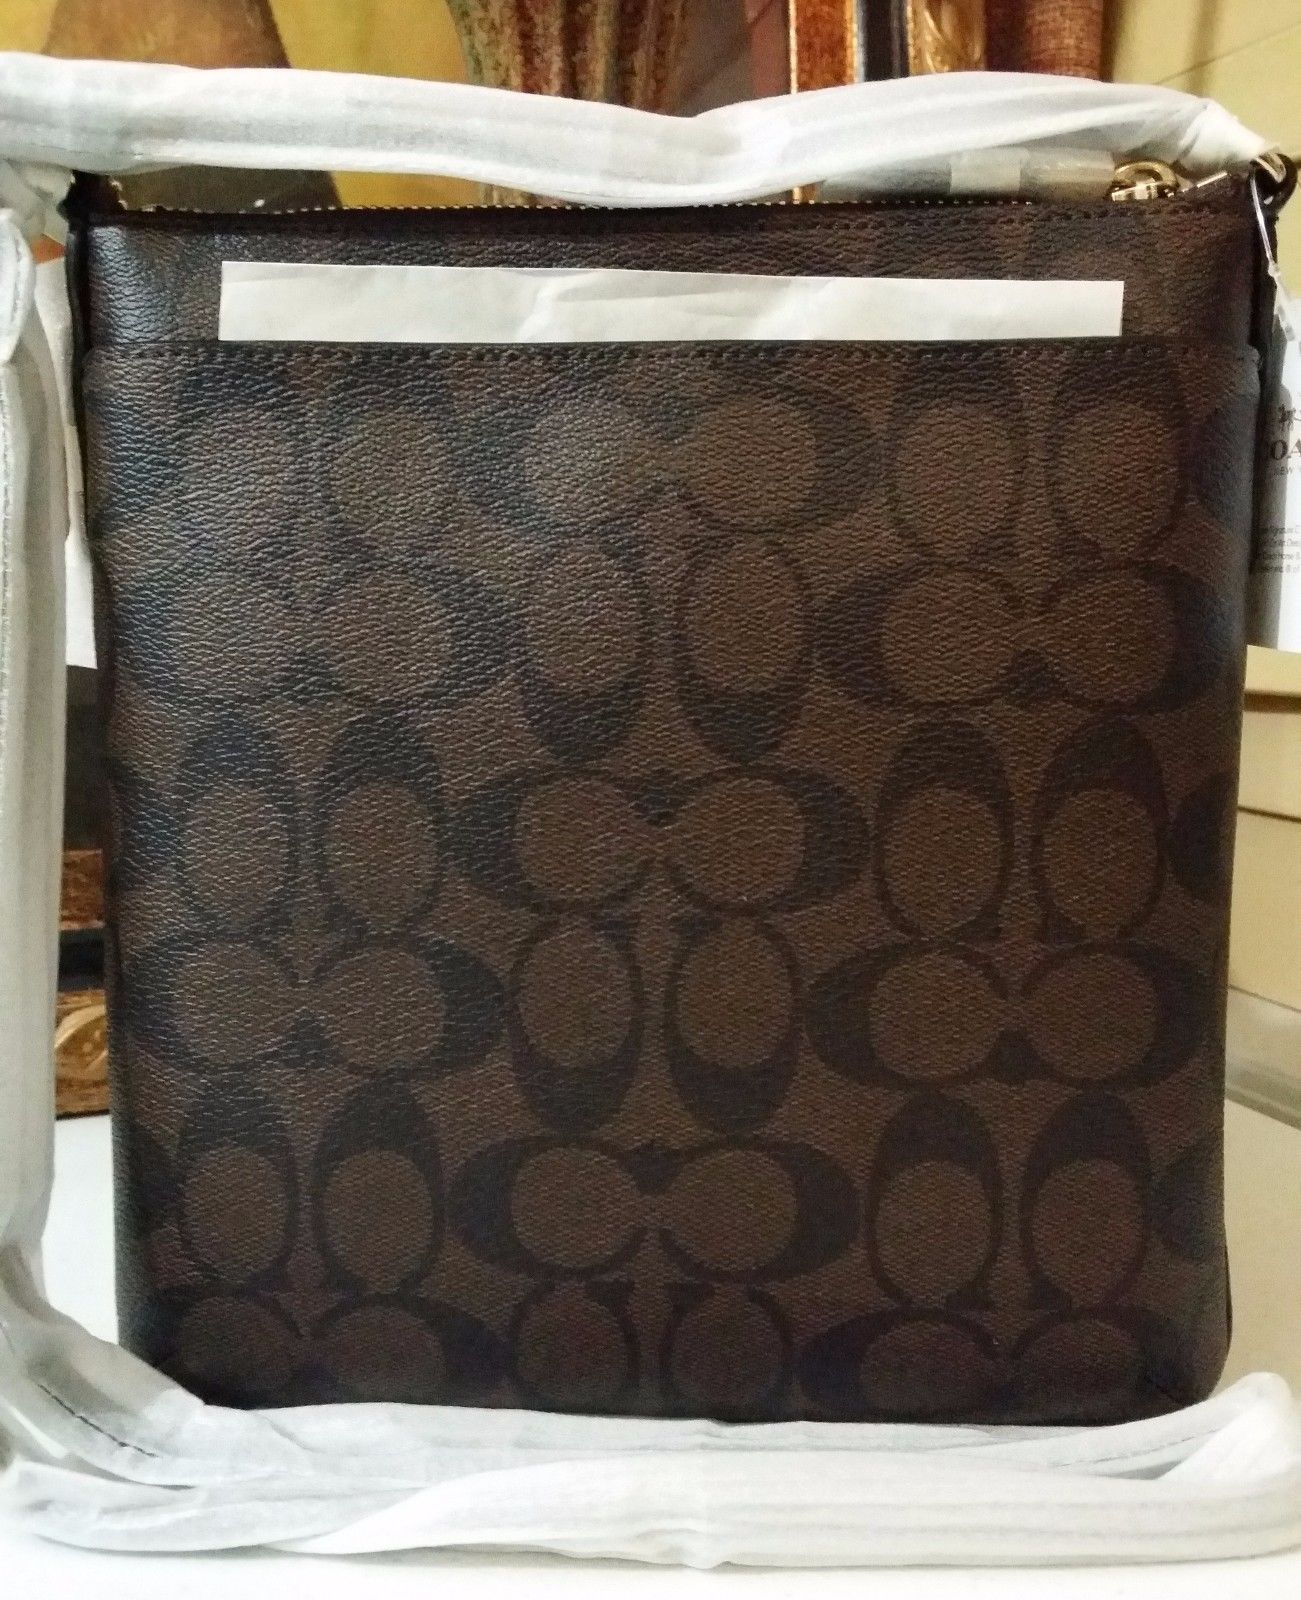 NWT COACH SIGNATURE NORTH/SOUTH CROSSBODY BAG F35940 IM//BROWN/BLACK $195